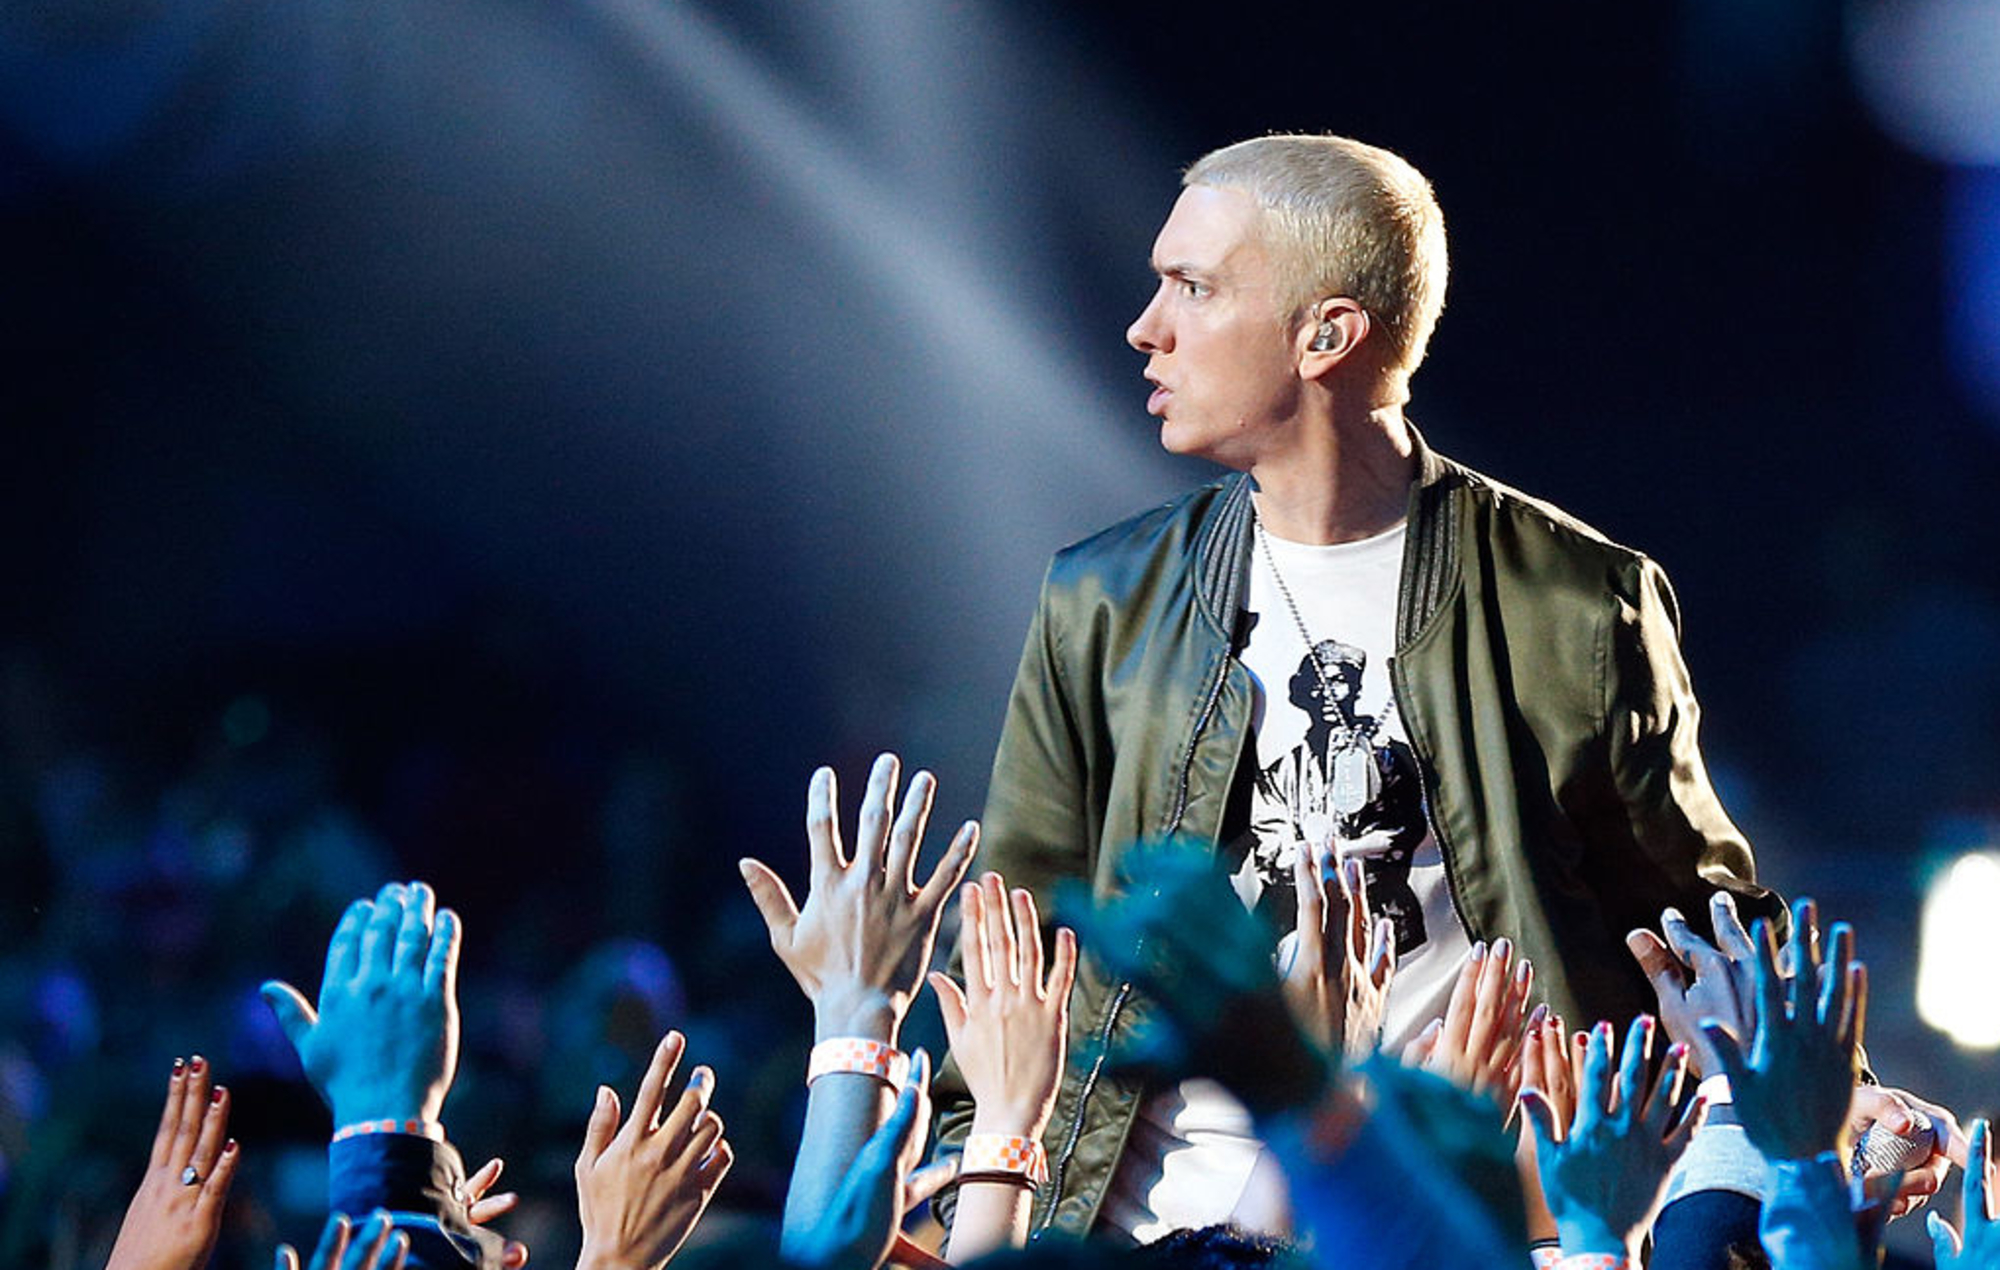 Eminem: Manchester mayor criticises rapper for controversial lyrics about arena attack